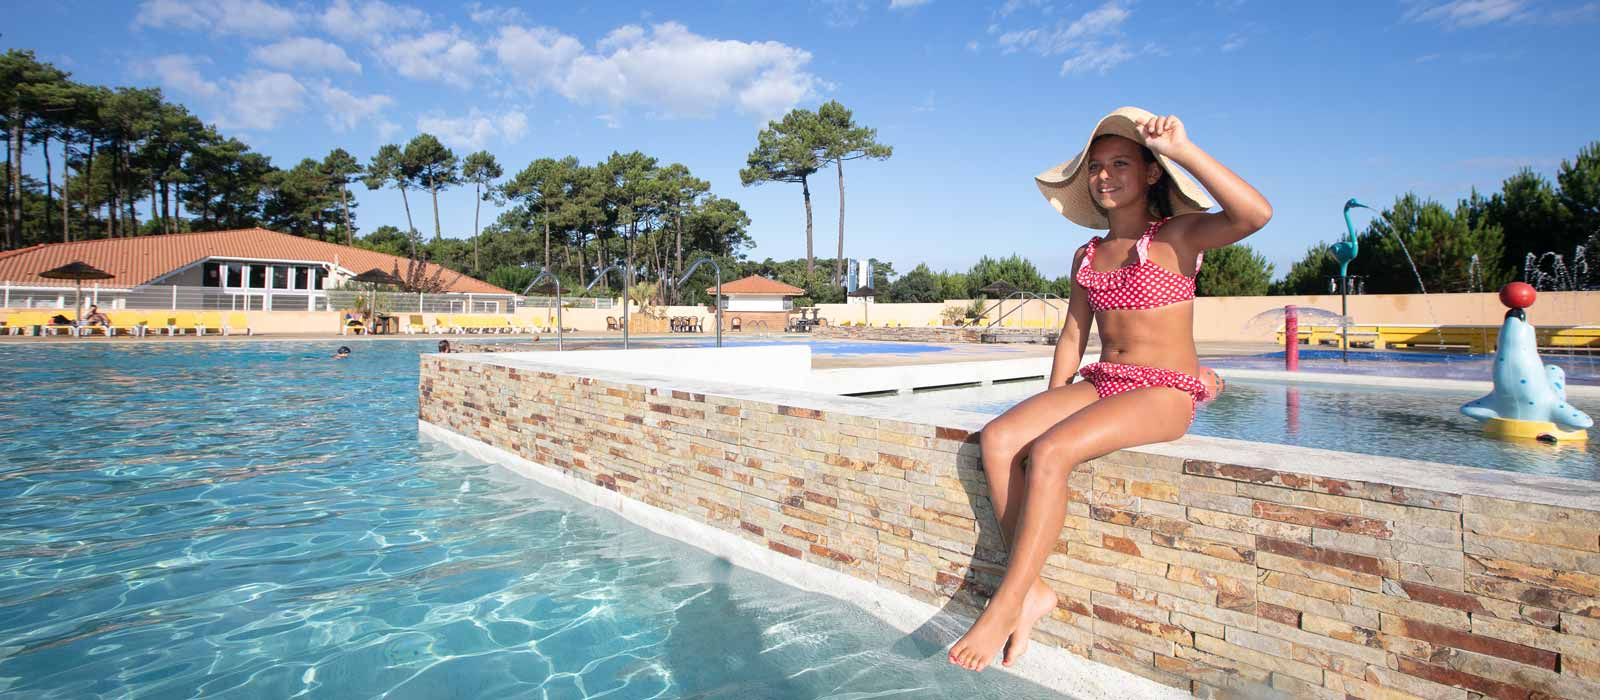 camping les oyats piscine